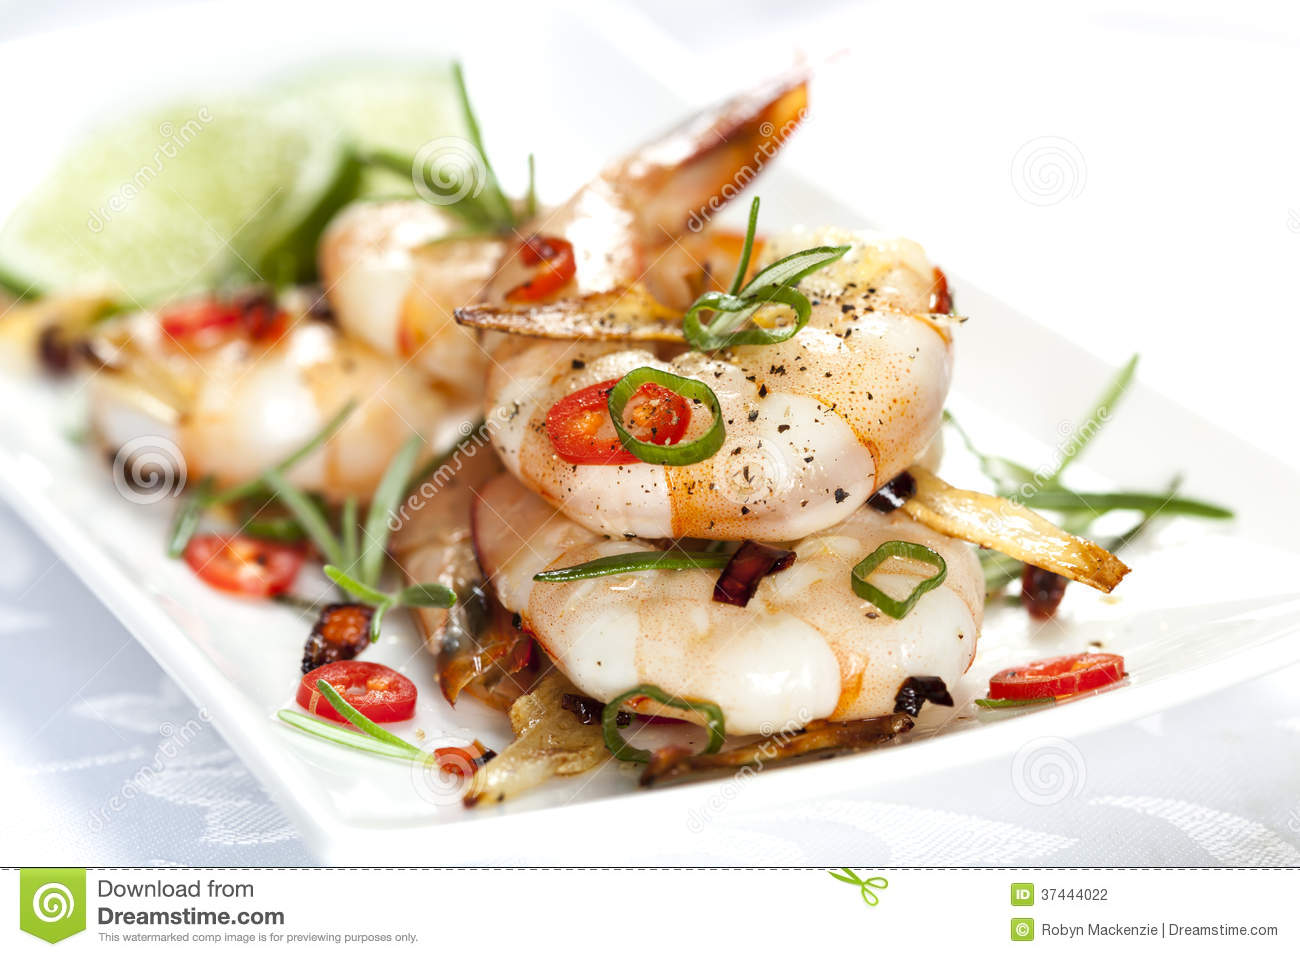 Grilled shrimp with garlic, rosemary and chili.